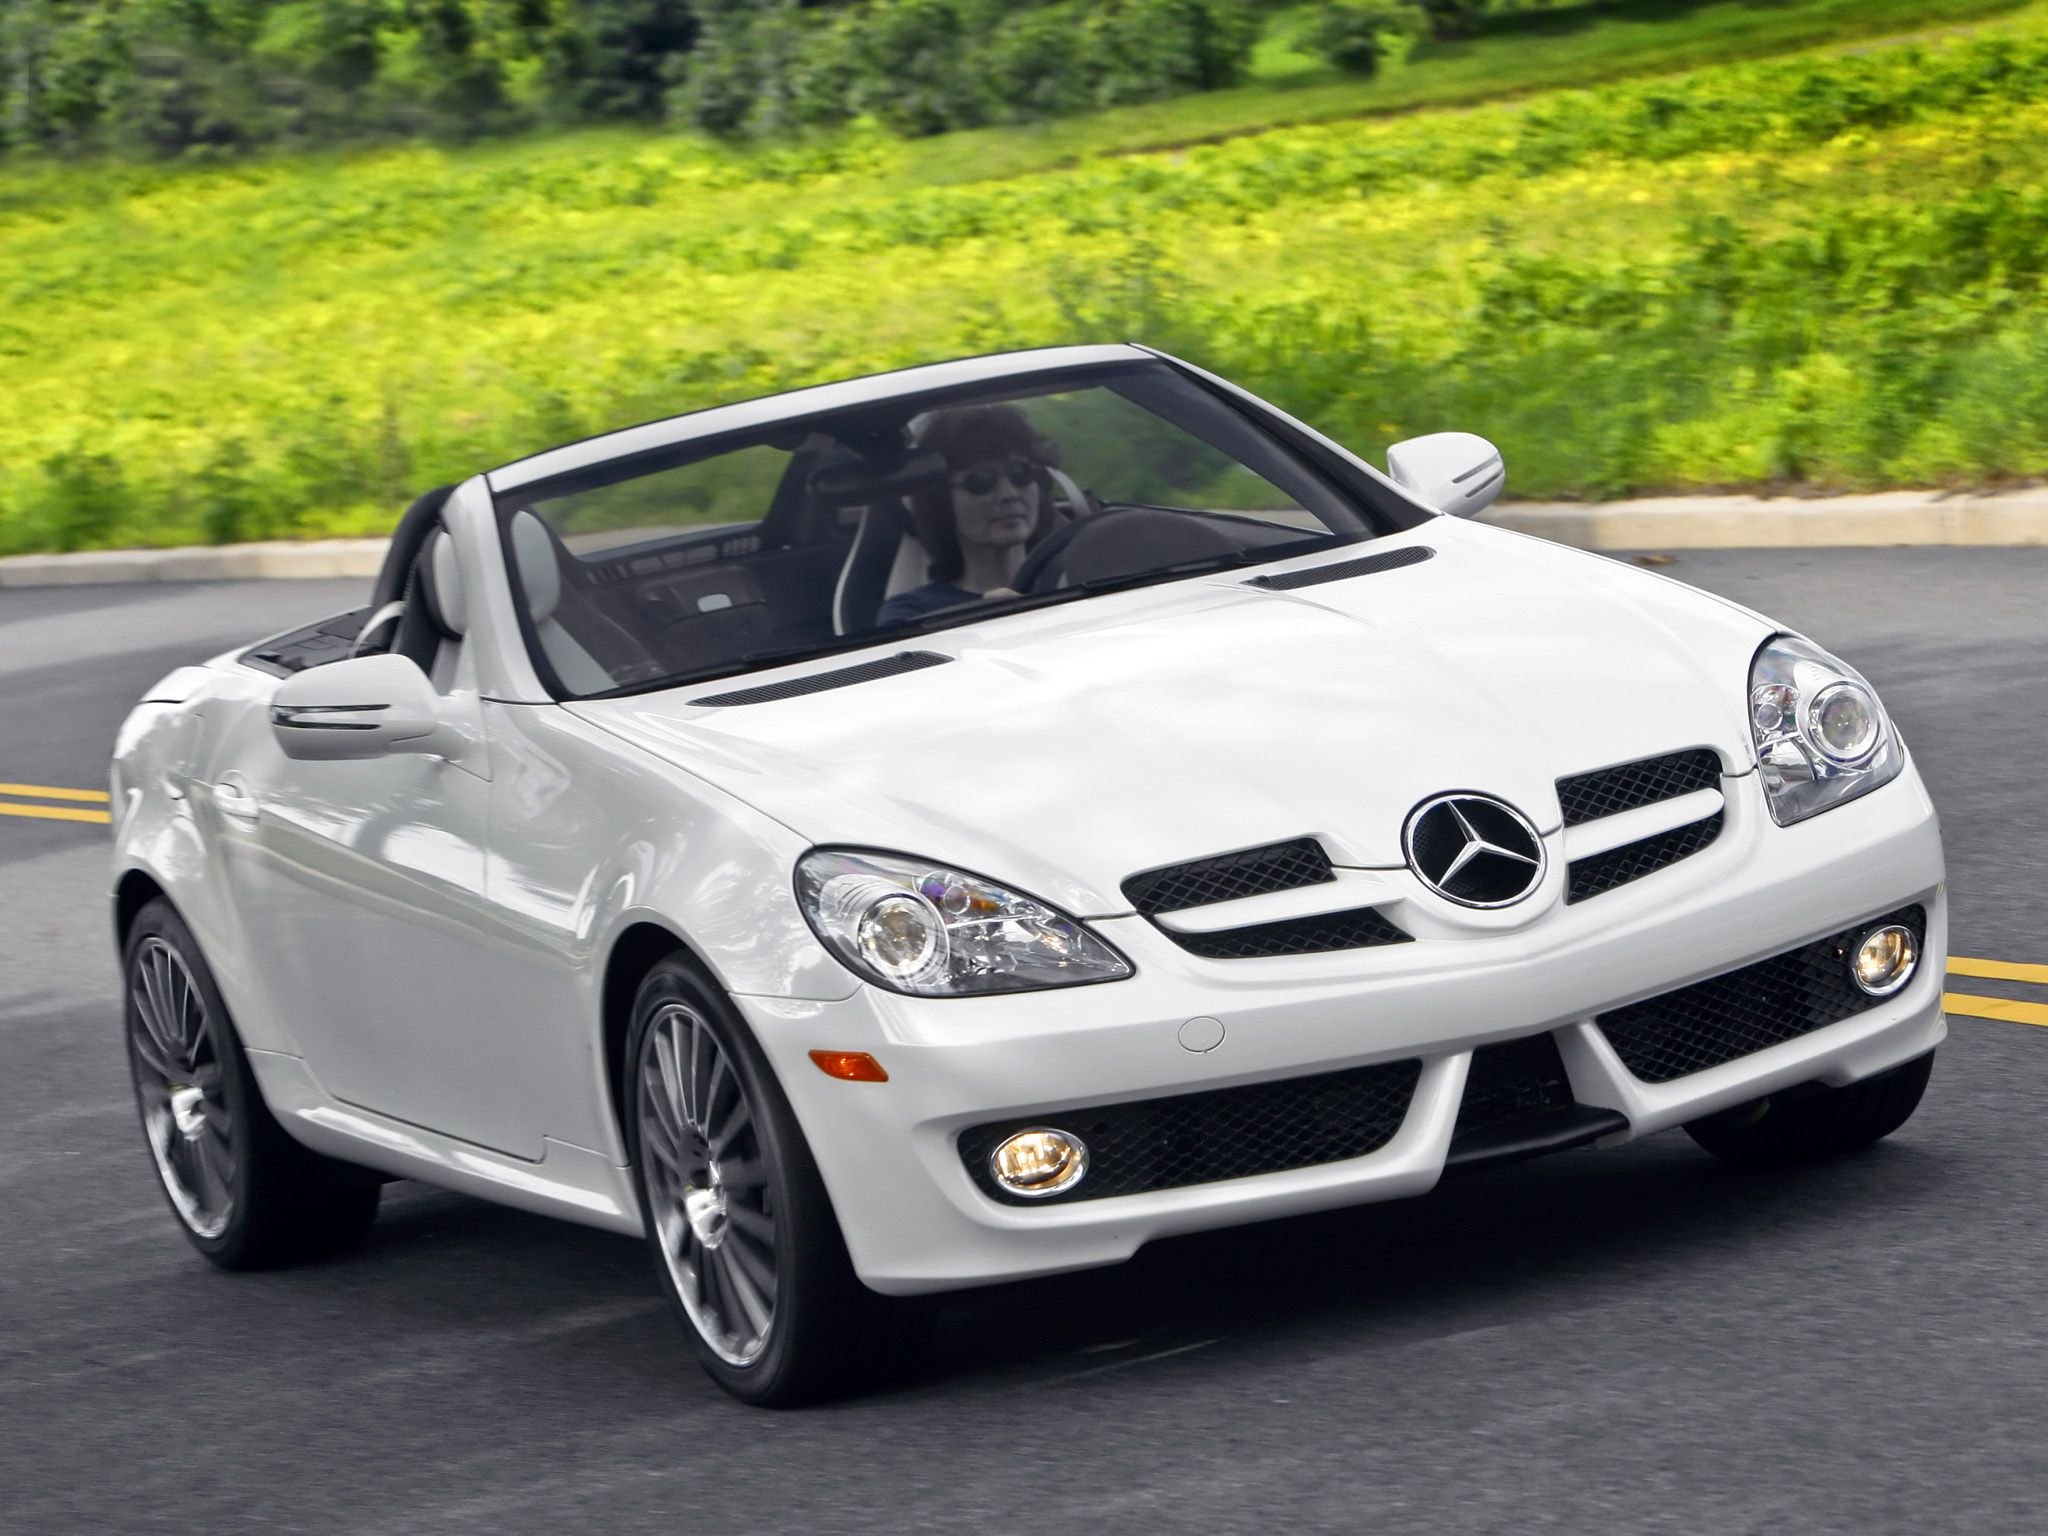 mercedes benz slk 300 diamond white edition us spec r171 39 2009 limited edition cars. Black Bedroom Furniture Sets. Home Design Ideas